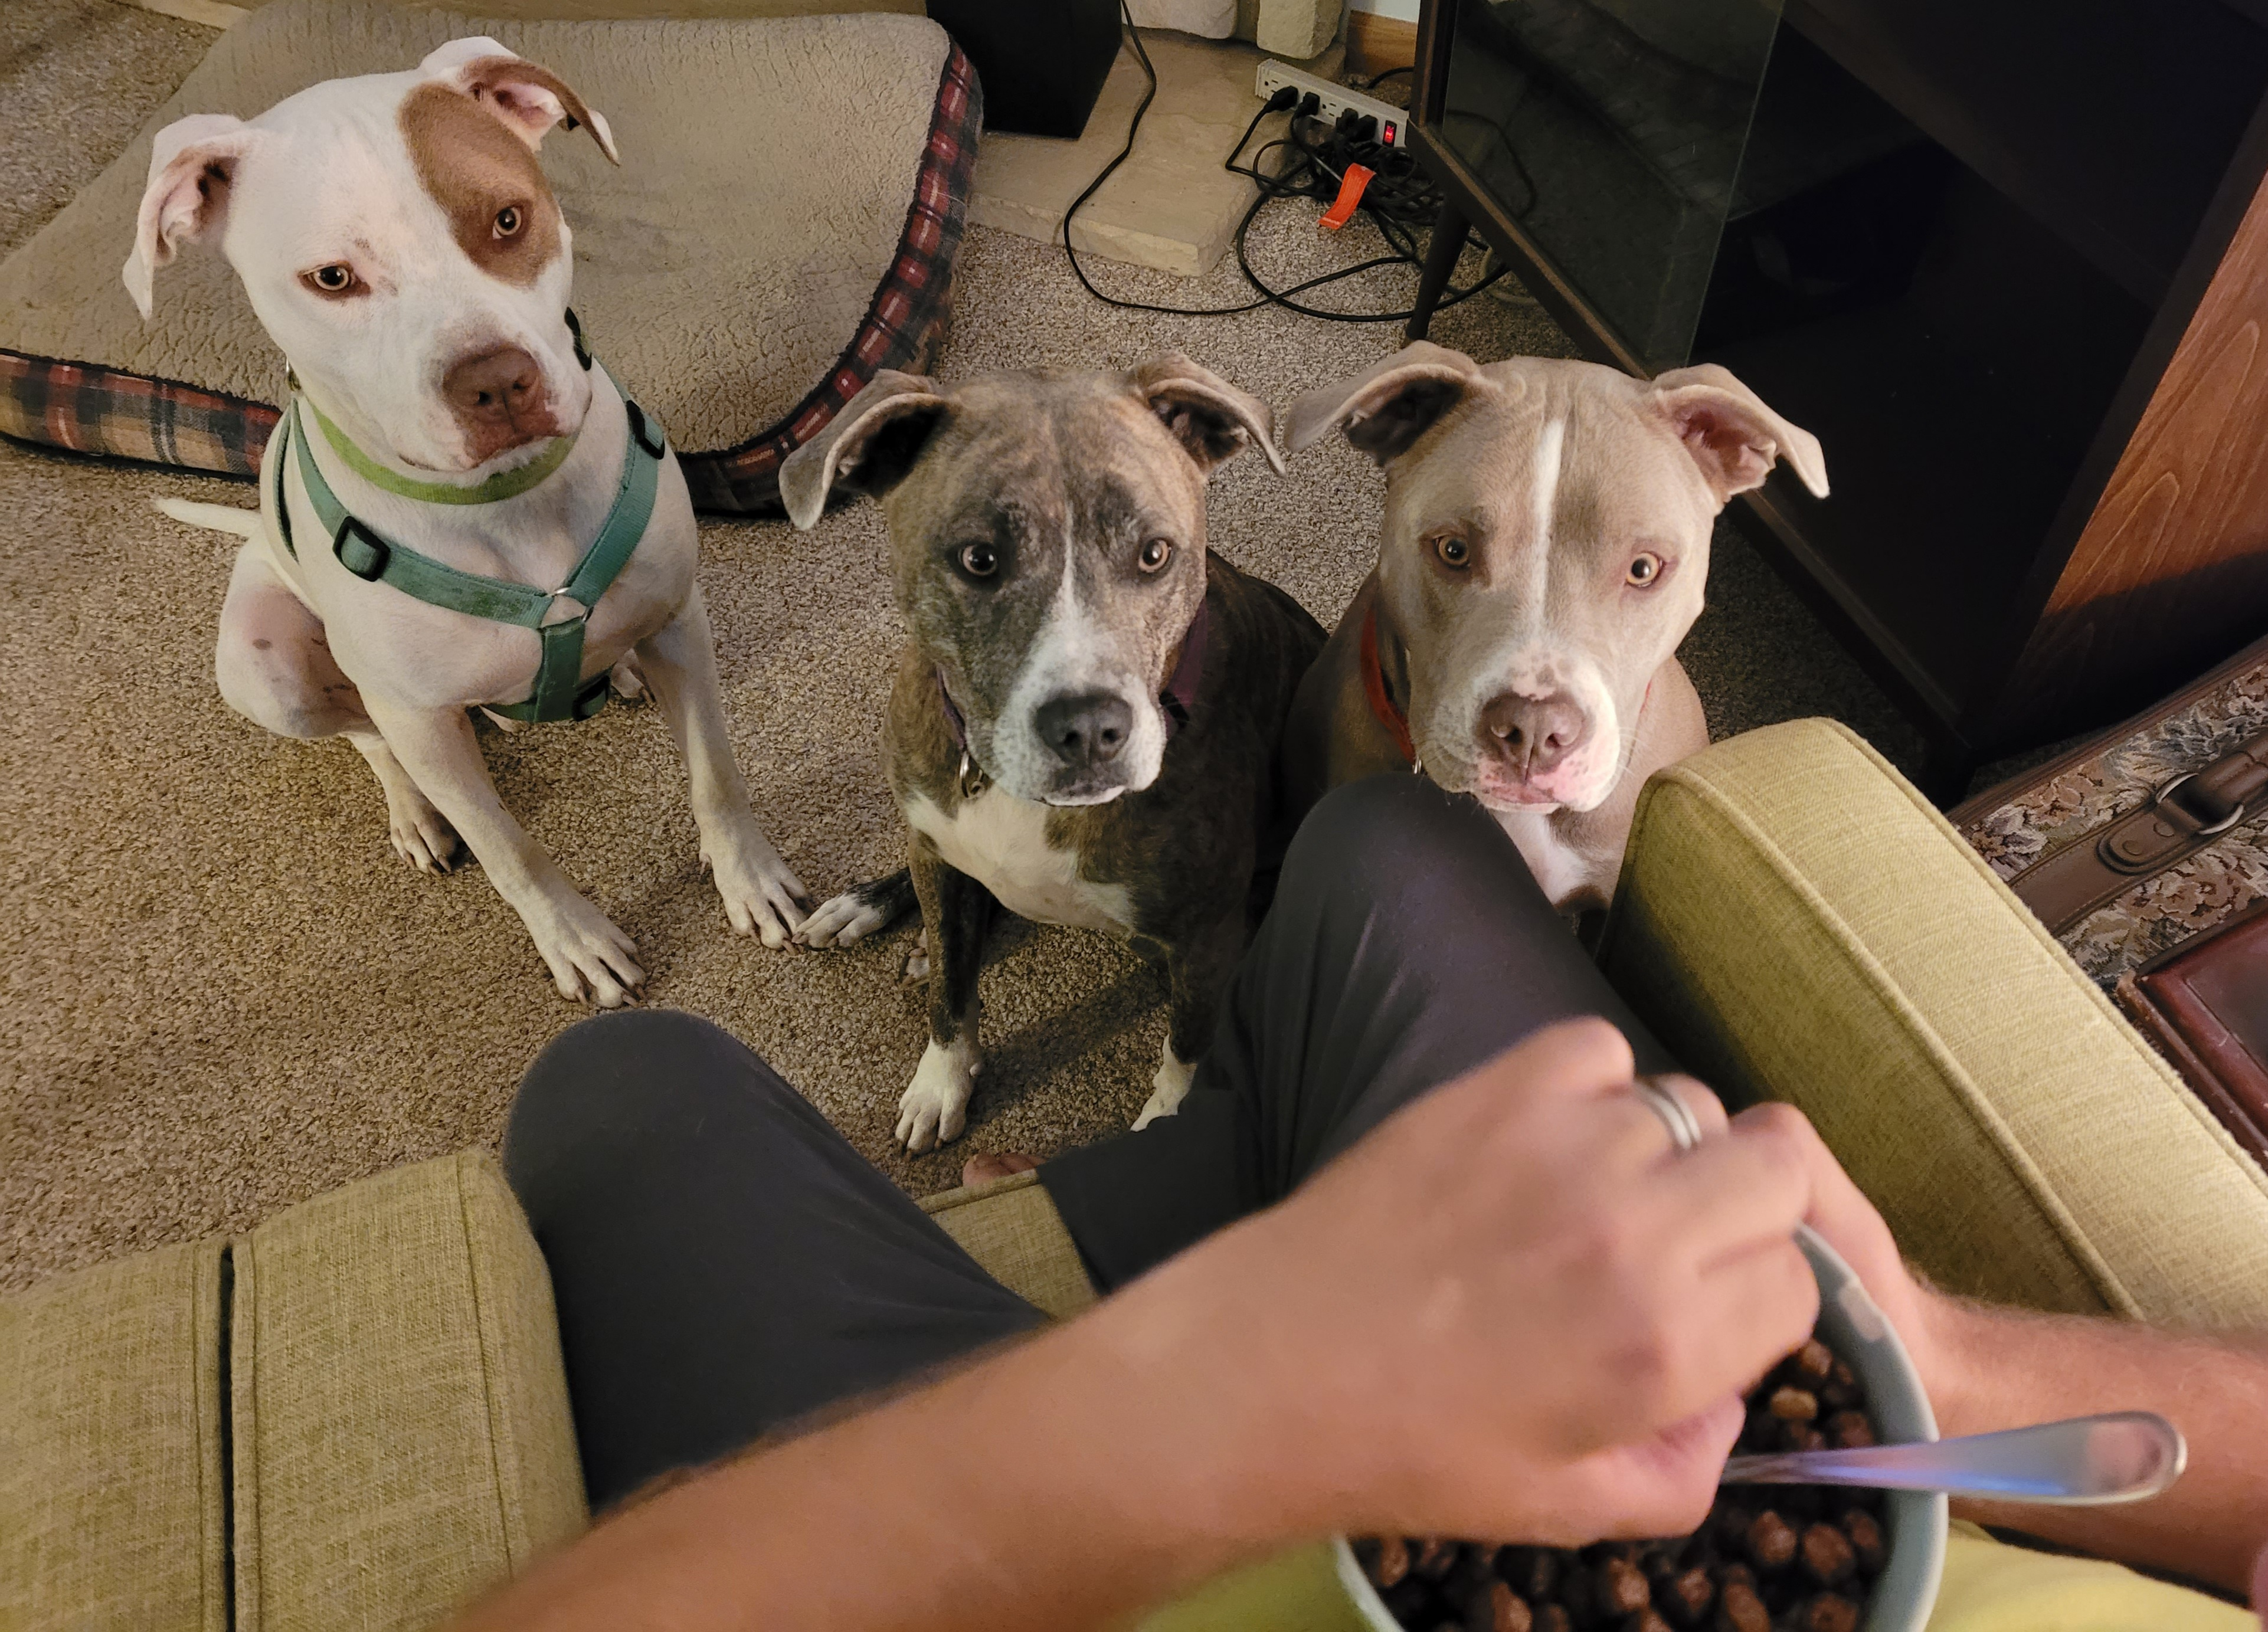 My pitbull pack